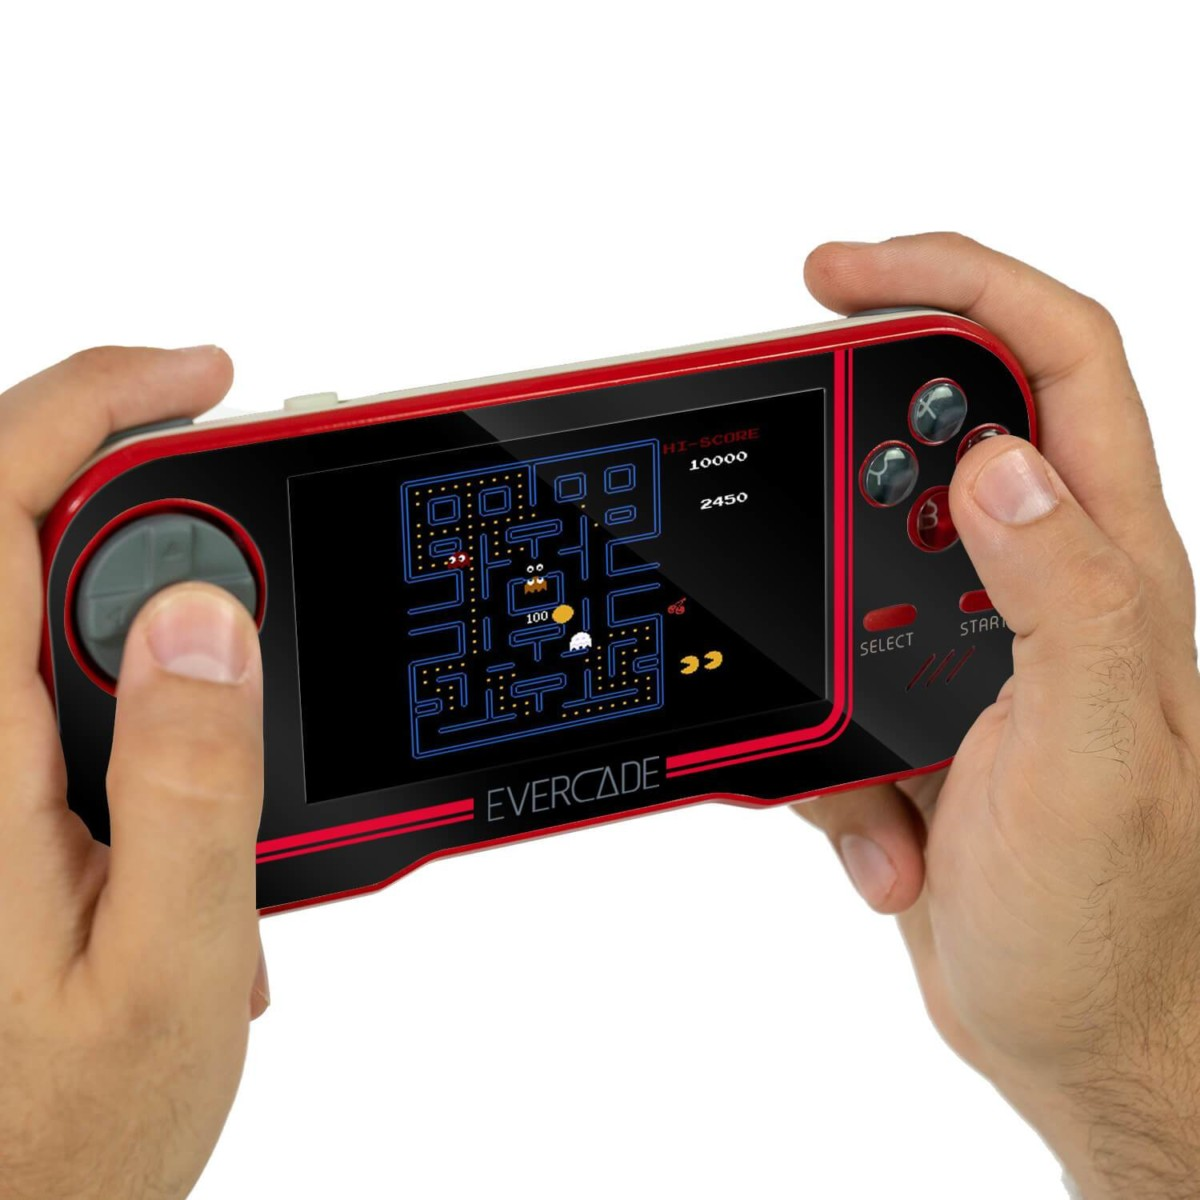 Evercade retro games console is finally available for pre-order at Funstock